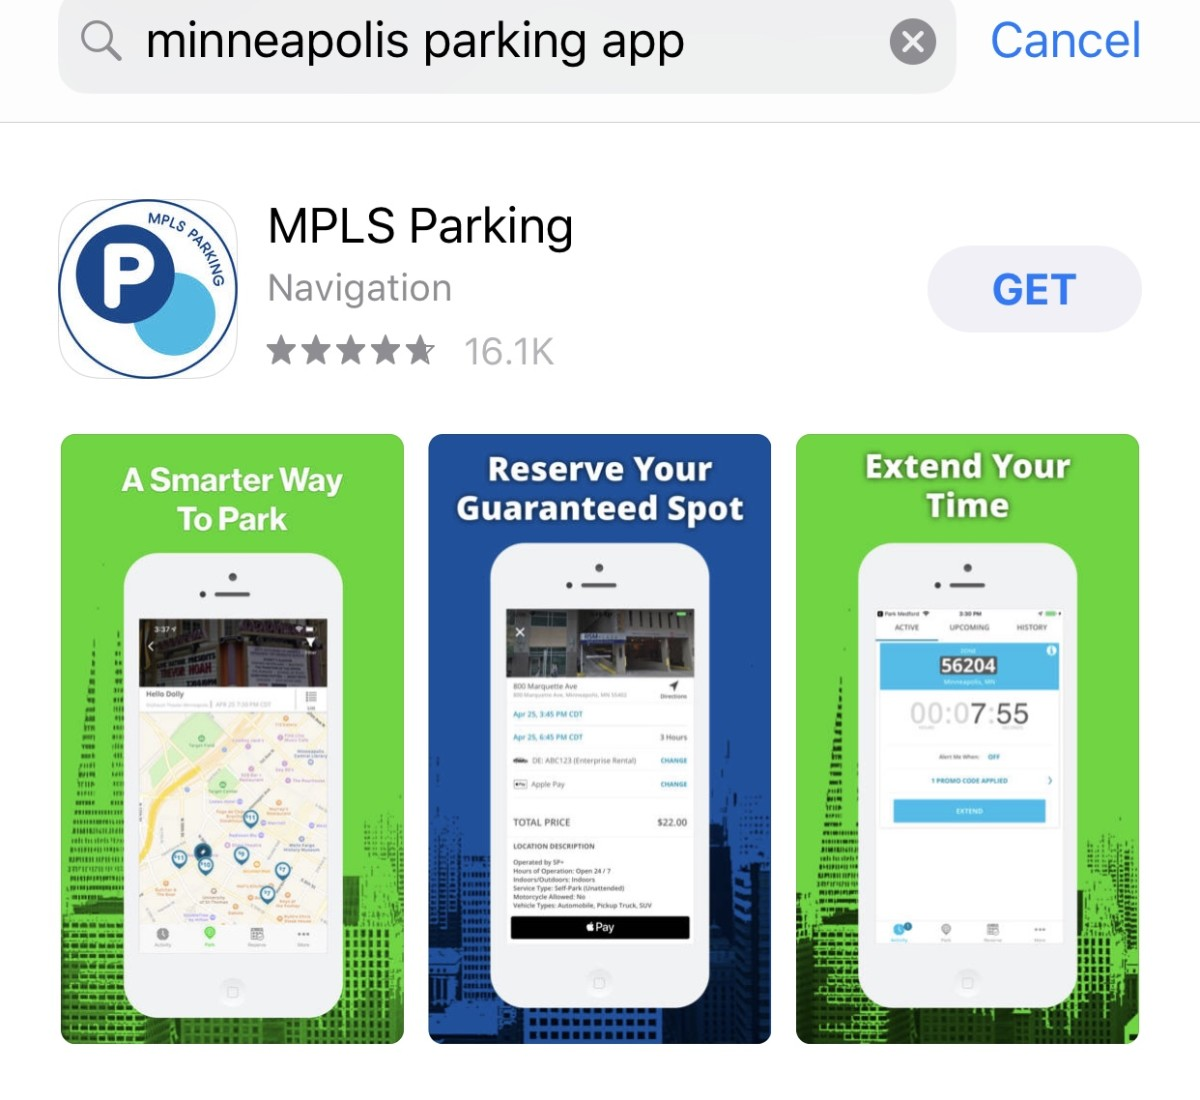 The view you get when downloading the MPLS Parking app on in iPhone.